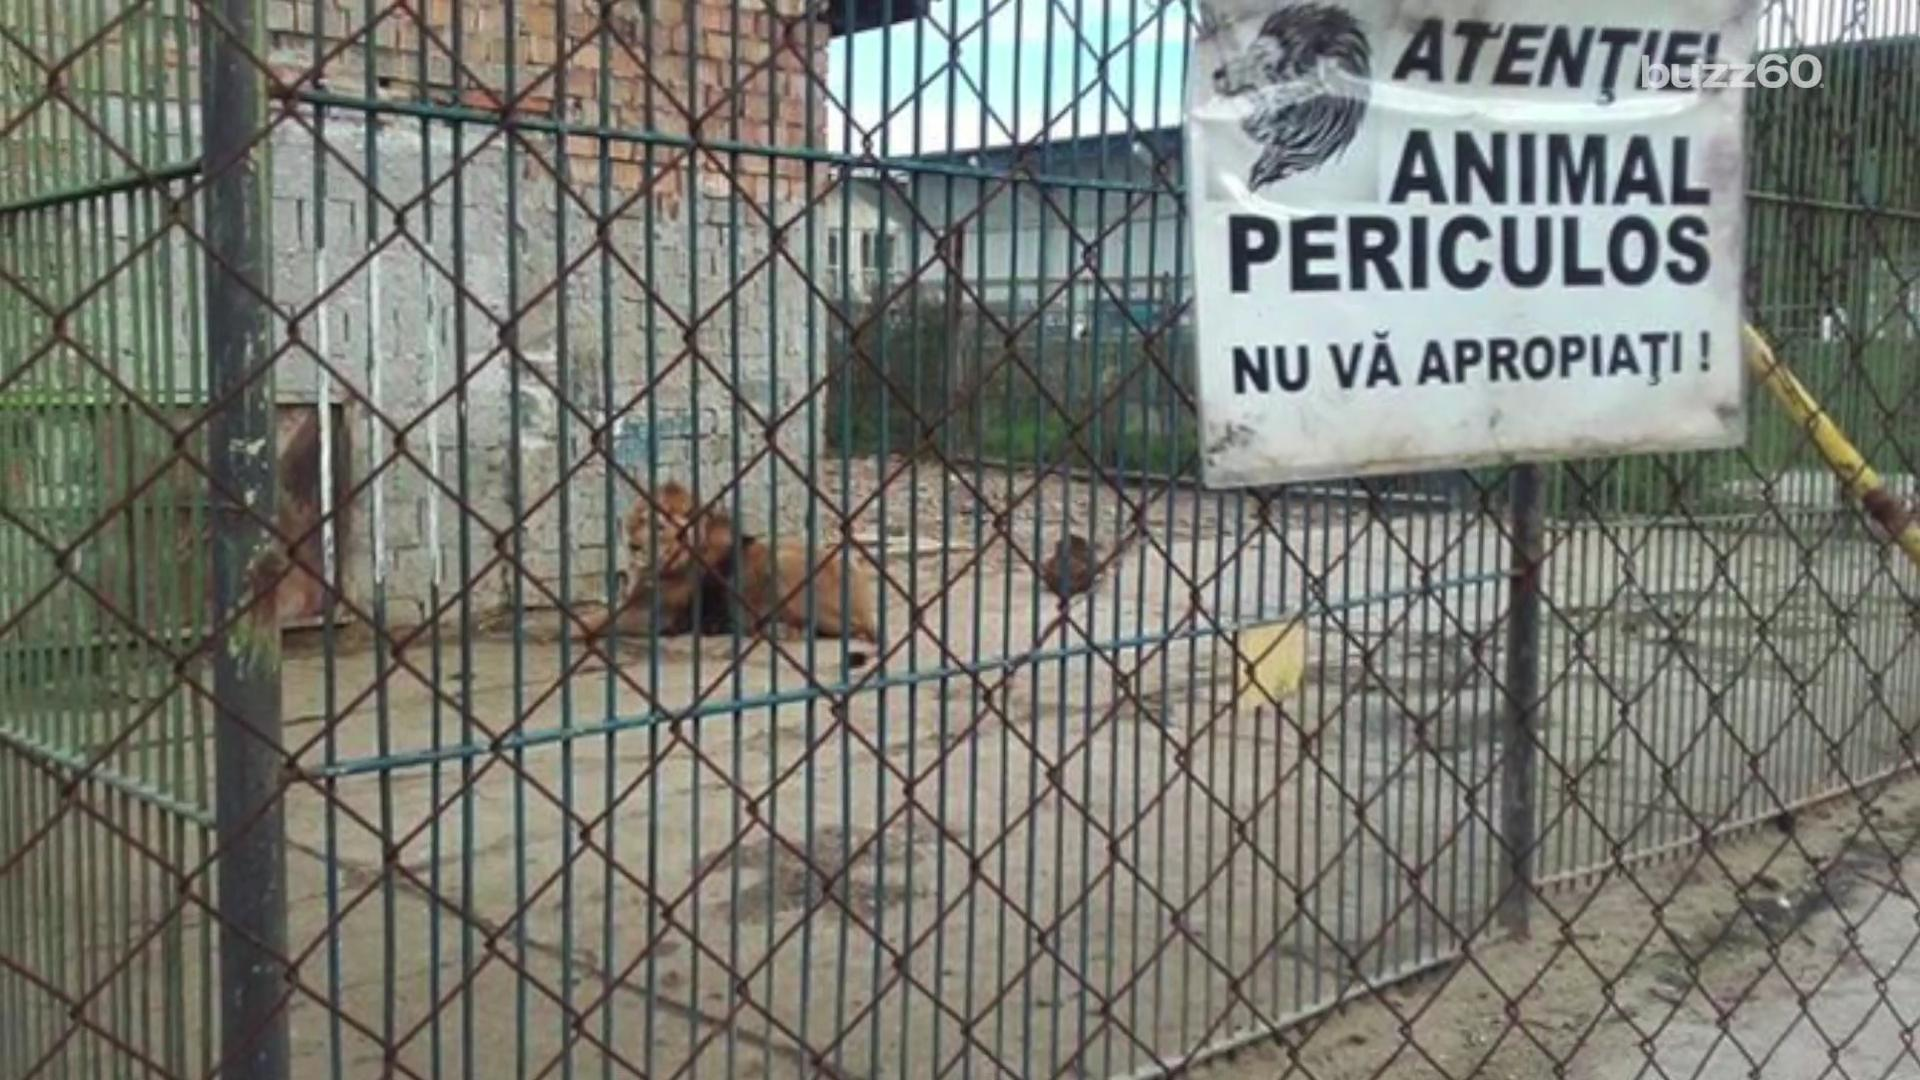 Lions rescued after zoo permanently closes and leaves them behind to die